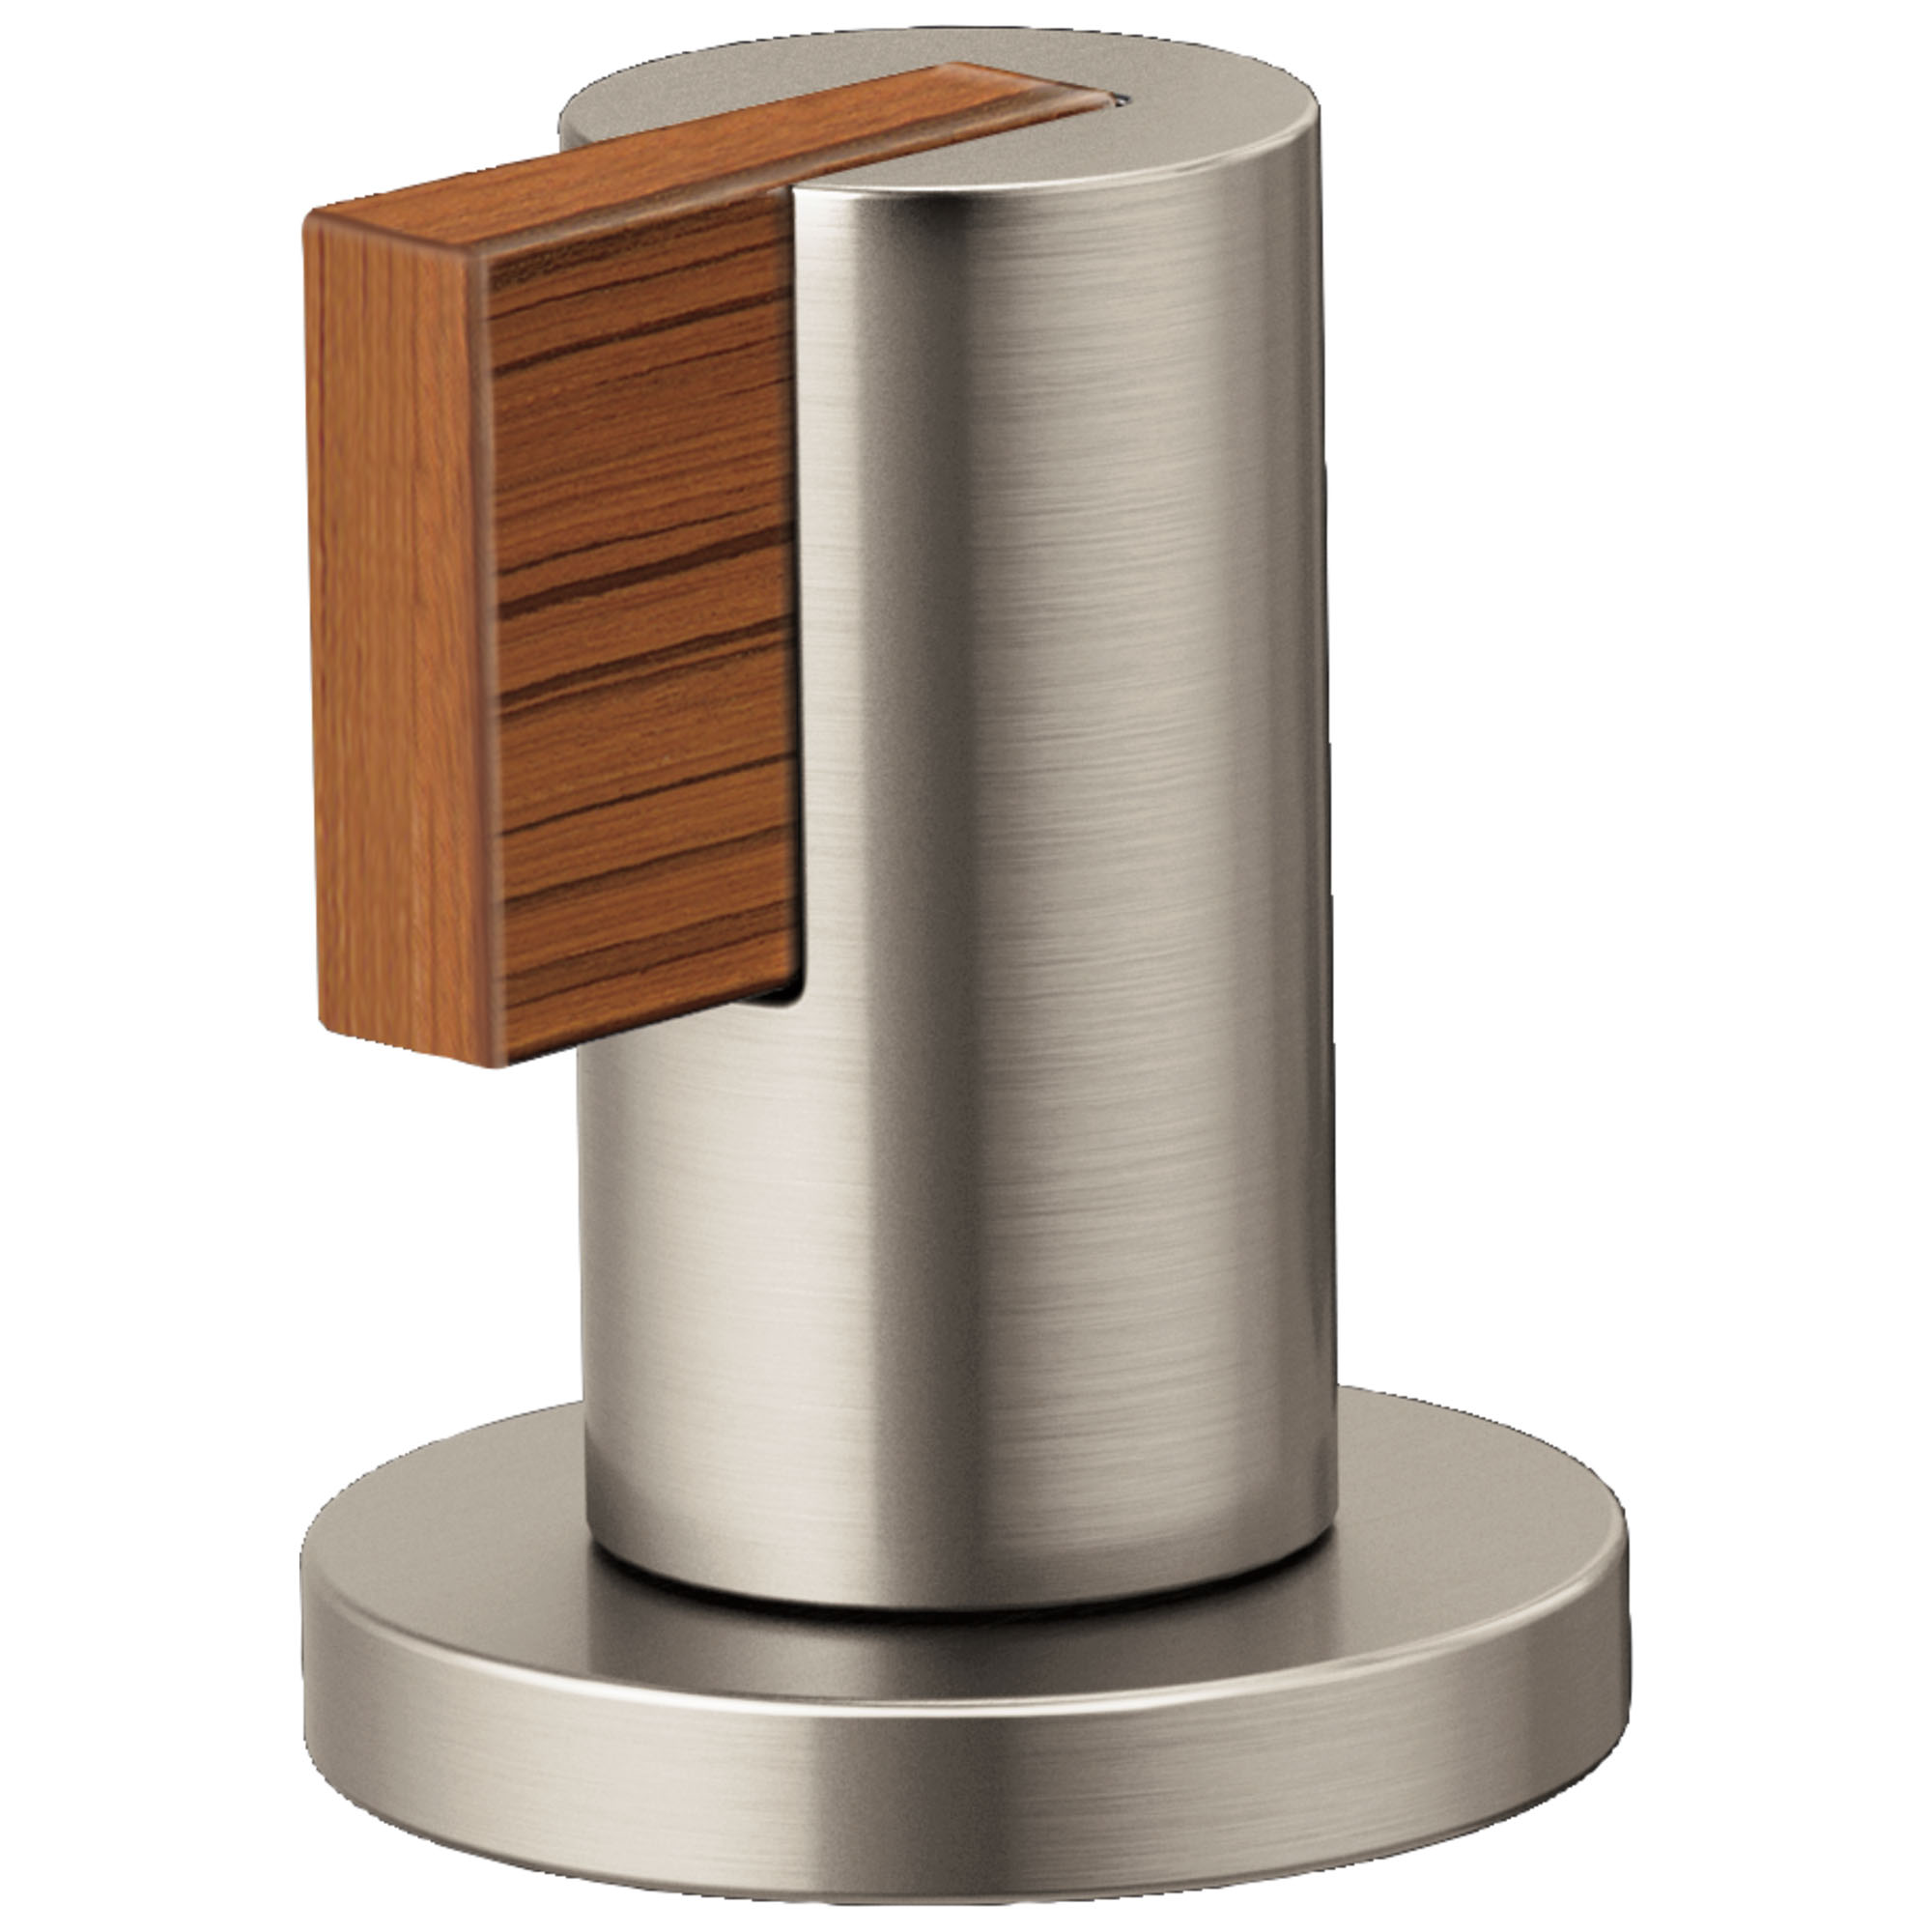 Brizo HL5332-NKTK Litze Widespread Handle Kit with Lever - Luxe Nickel/Teak Wood